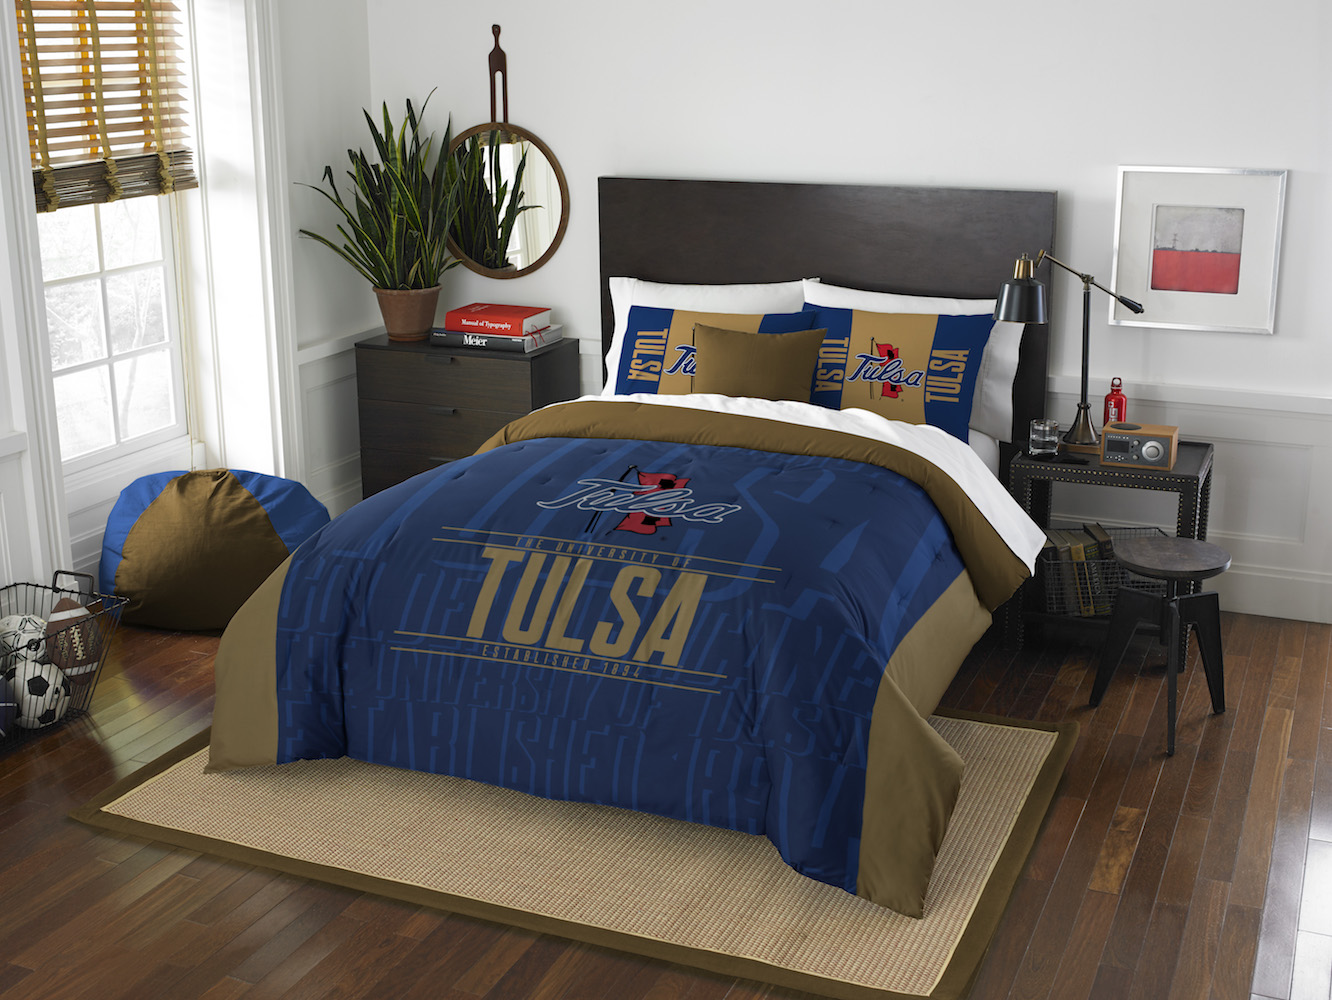 Tulsa Golden Hurricane QUEEN/FULL size Comforter and 2 Shams